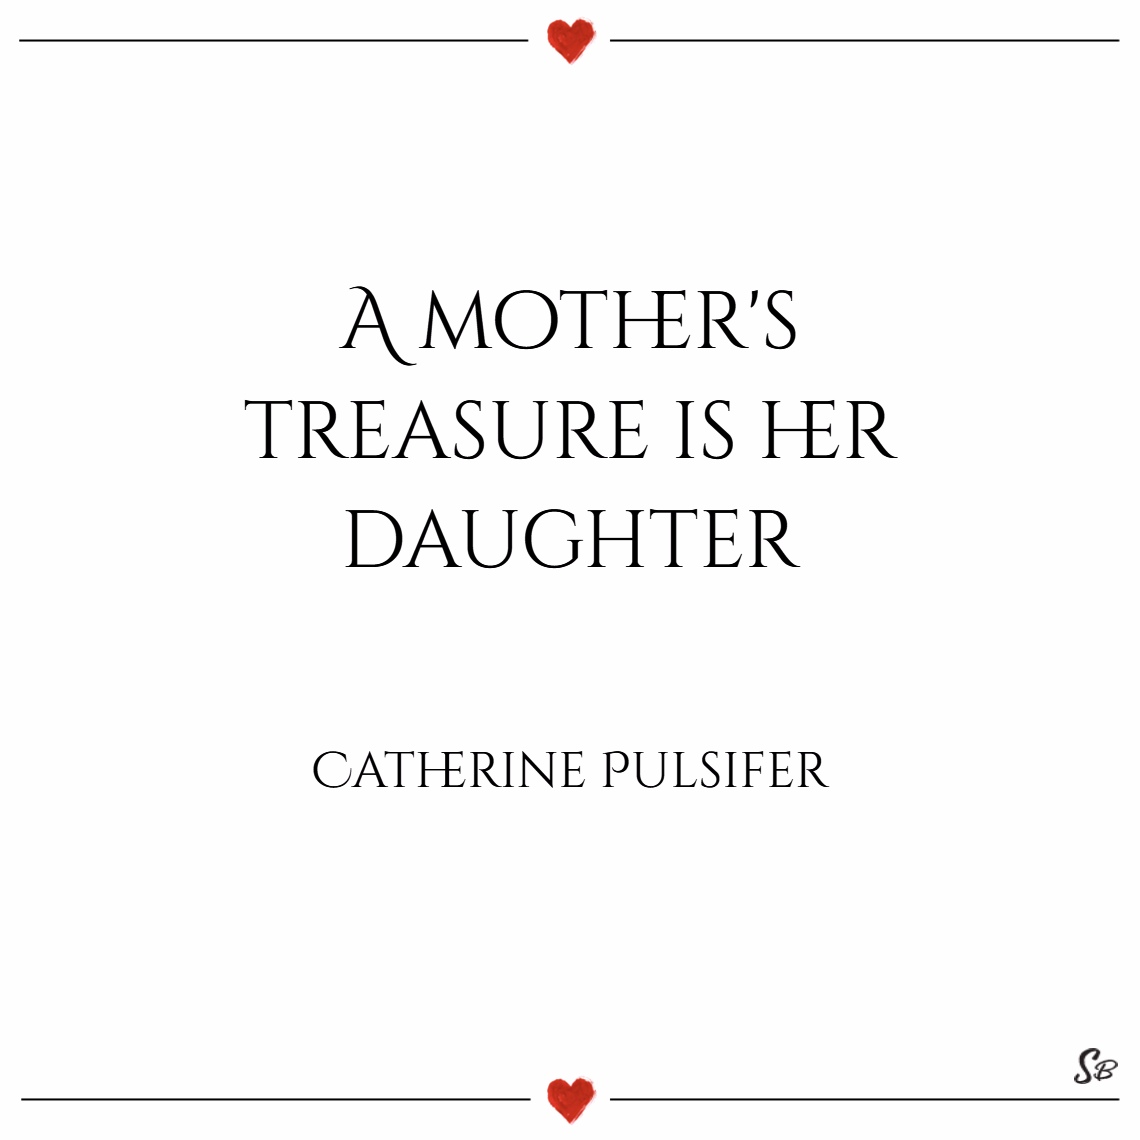 A mother's treasure is her daughter. – catherine pulsifer